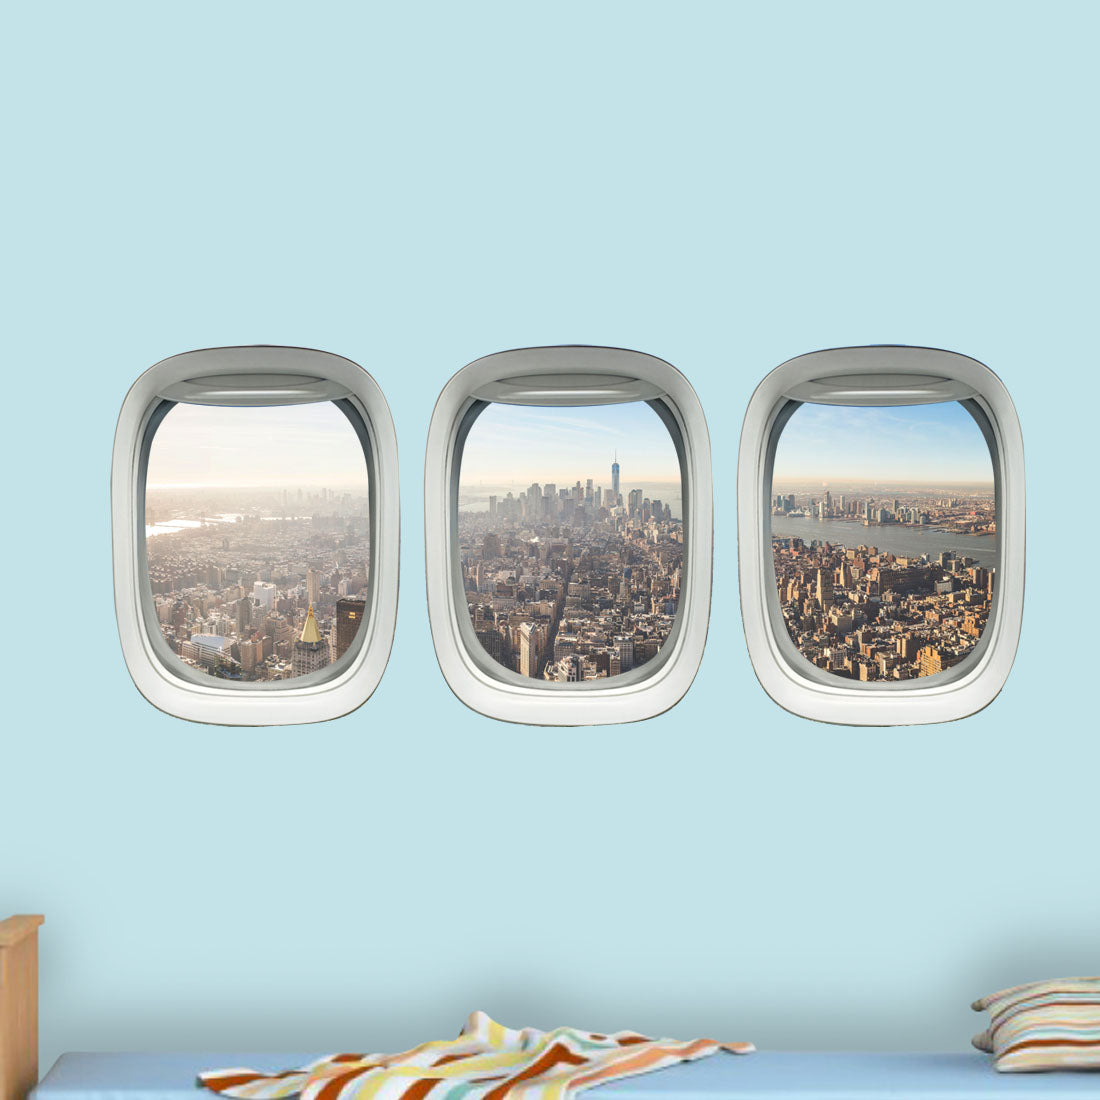 VWAQ Plane Window Decal Aviation Window Decal City Skyline Wall Cling - PPW25 - VWAQ Vinyl Wall Art Quotes and Prints